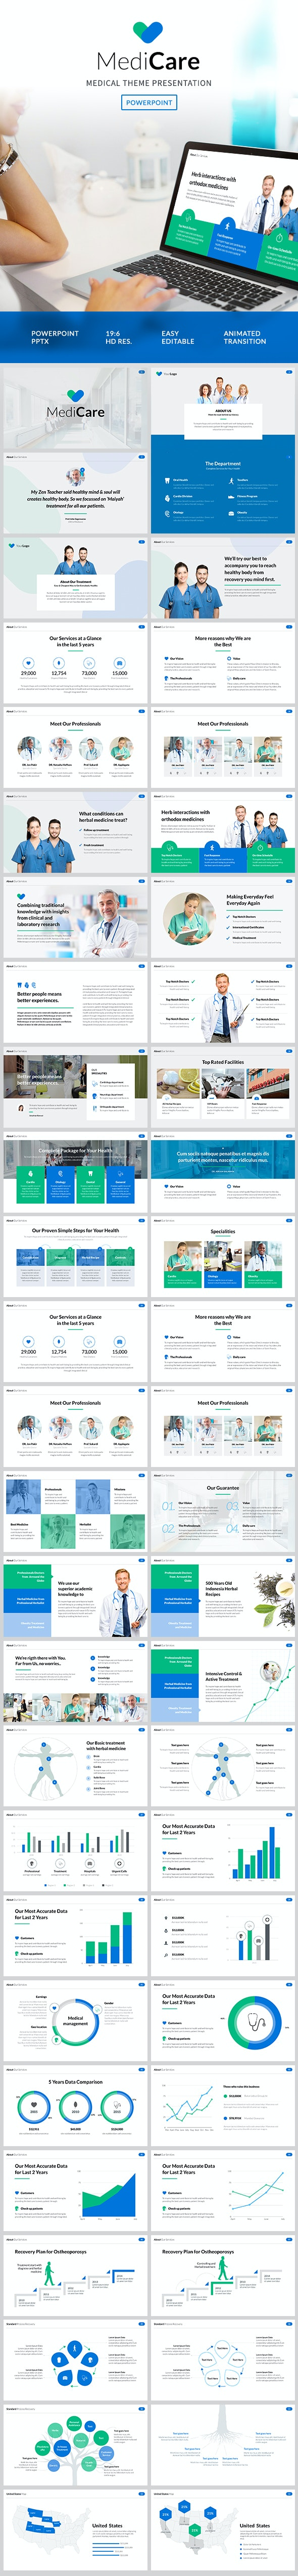 Medicare - Medical Theme Powerpoint Template - PowerPoint Templates Presentation Templates